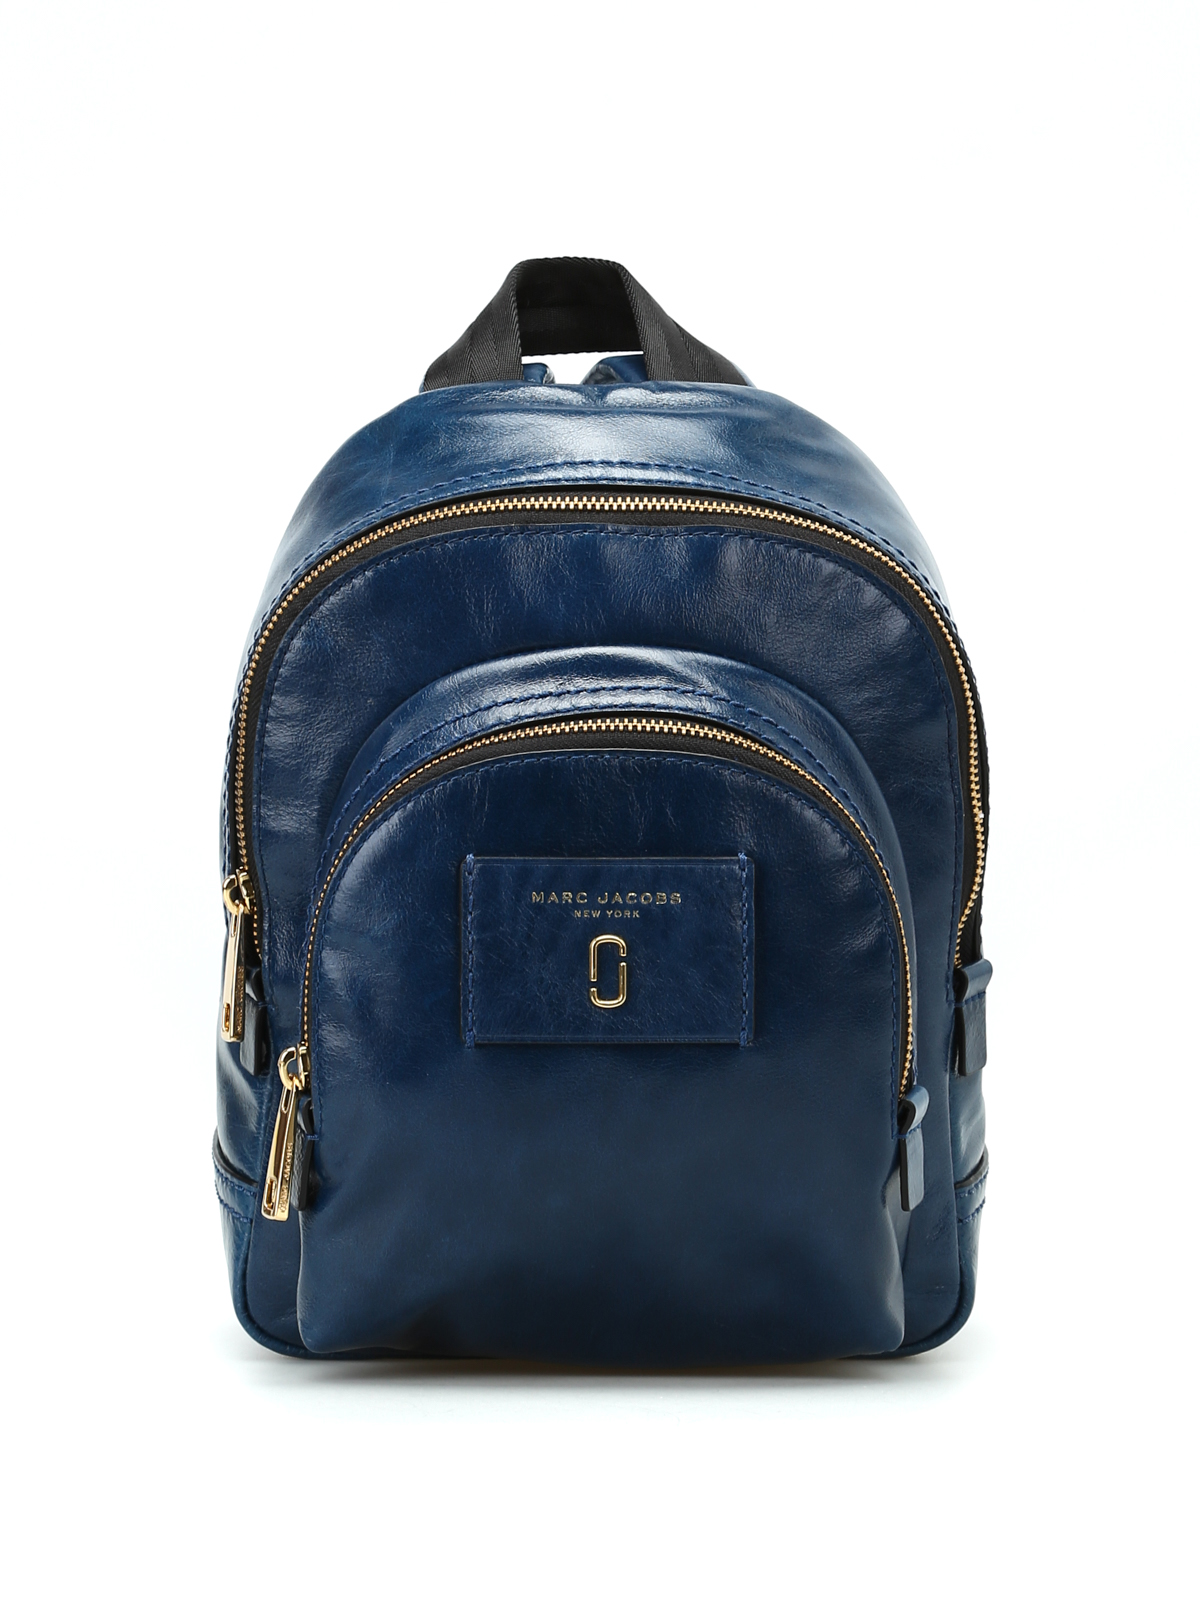 crackle blue leather mini backpack by marc jacobs. Black Bedroom Furniture Sets. Home Design Ideas